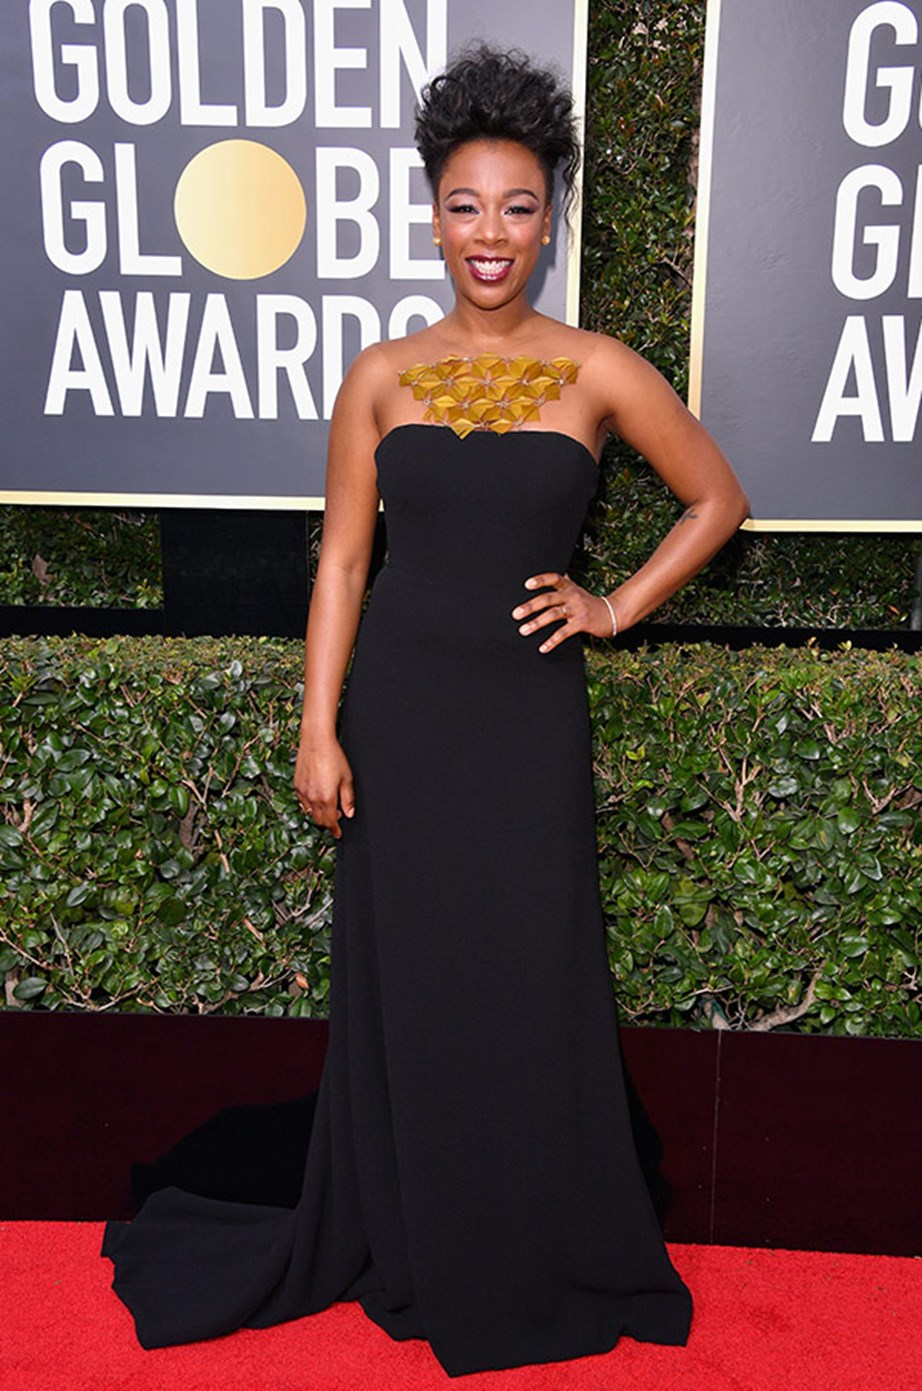 *Orange is the New Black* star Samira Wiley steps out in a strapless dress with an intricate neck-piece